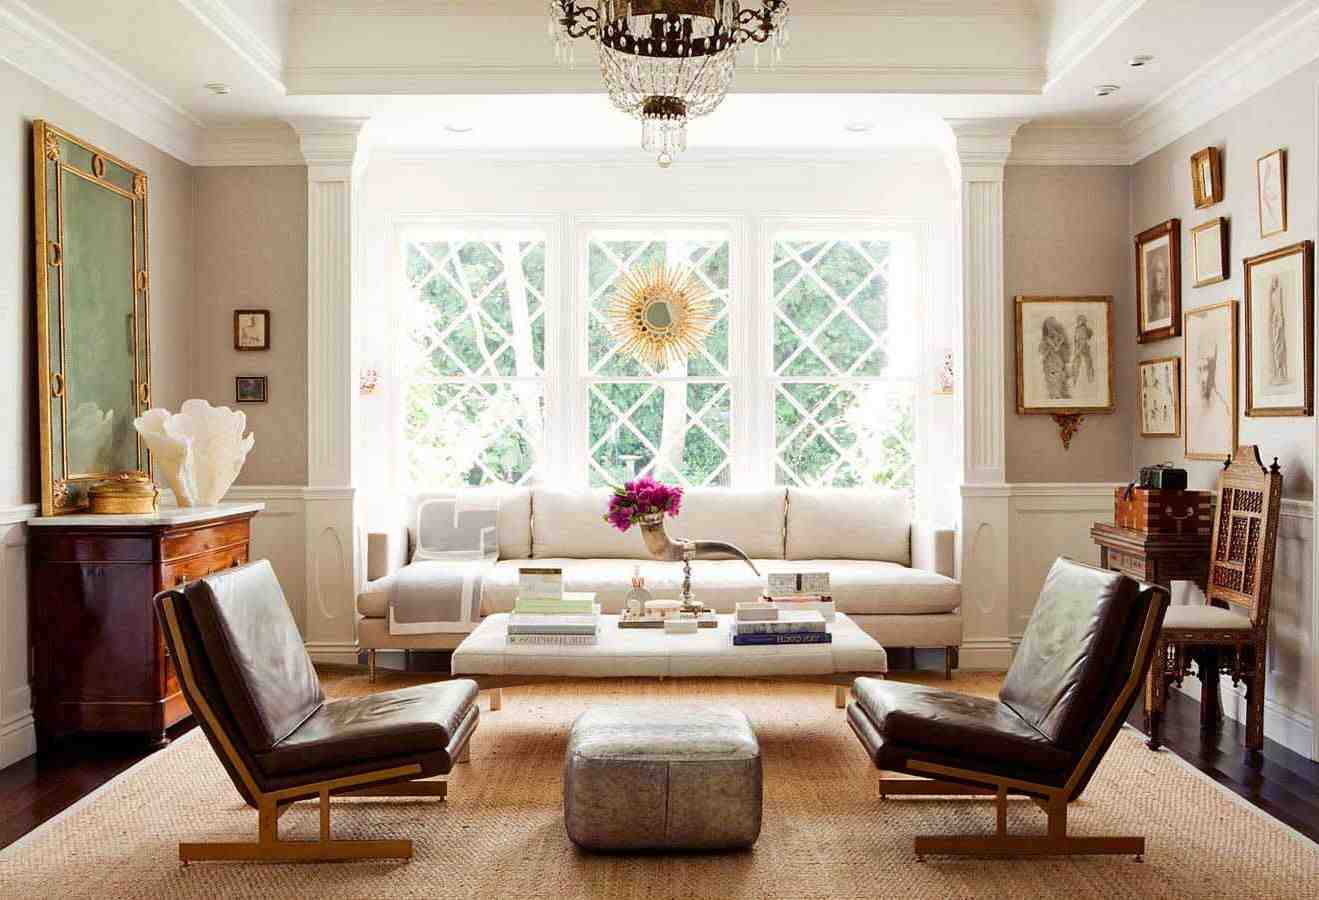 Salon Feng Shui Plan Feng Shui 101 How To Increase Positive Energy In Your Living Room